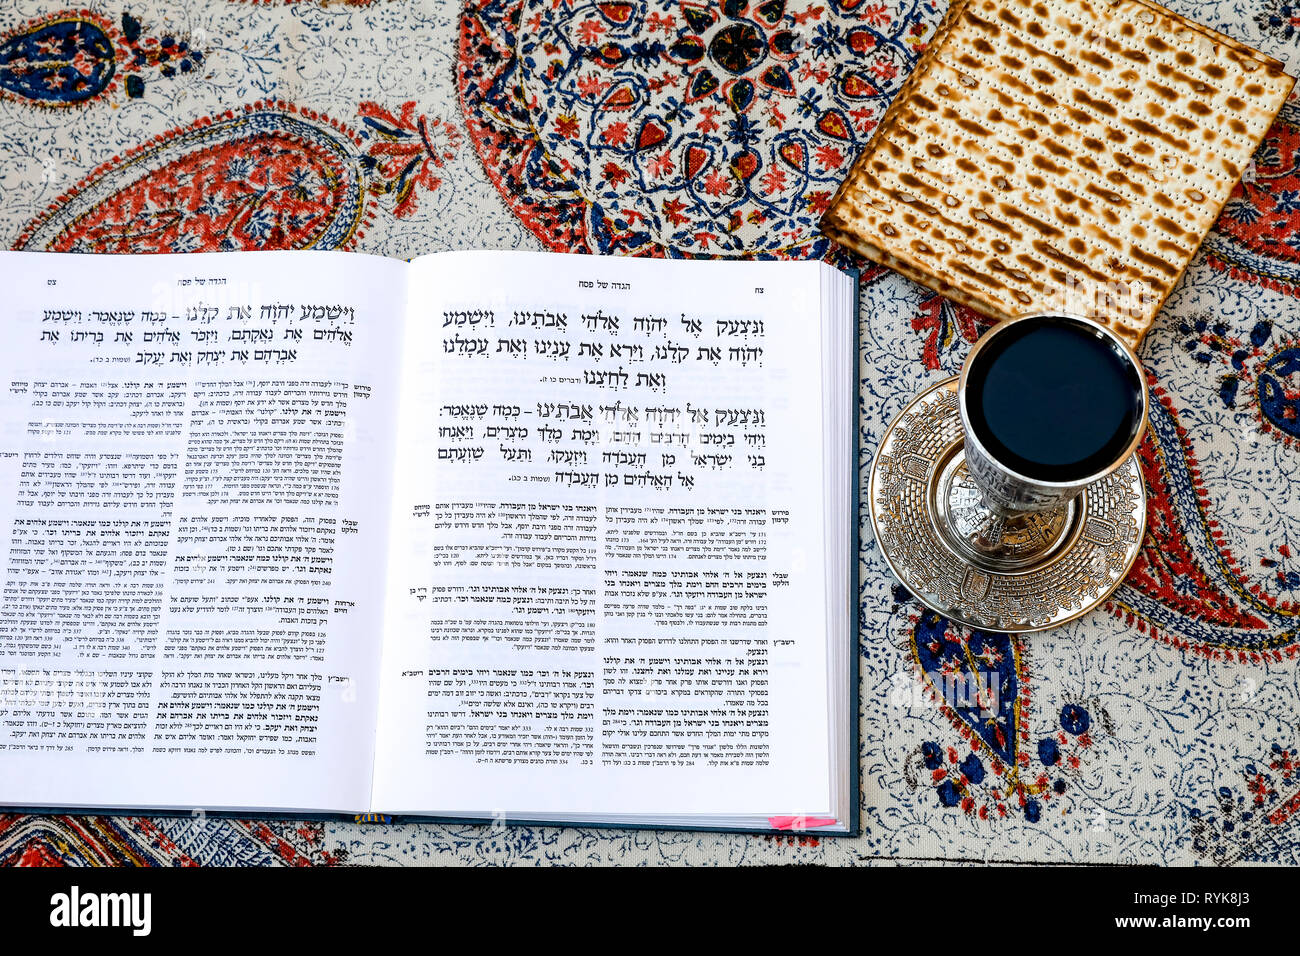 Passover Seder Haggadah in a Jerusalem jewish home, with wine and matsa. - Stock Image